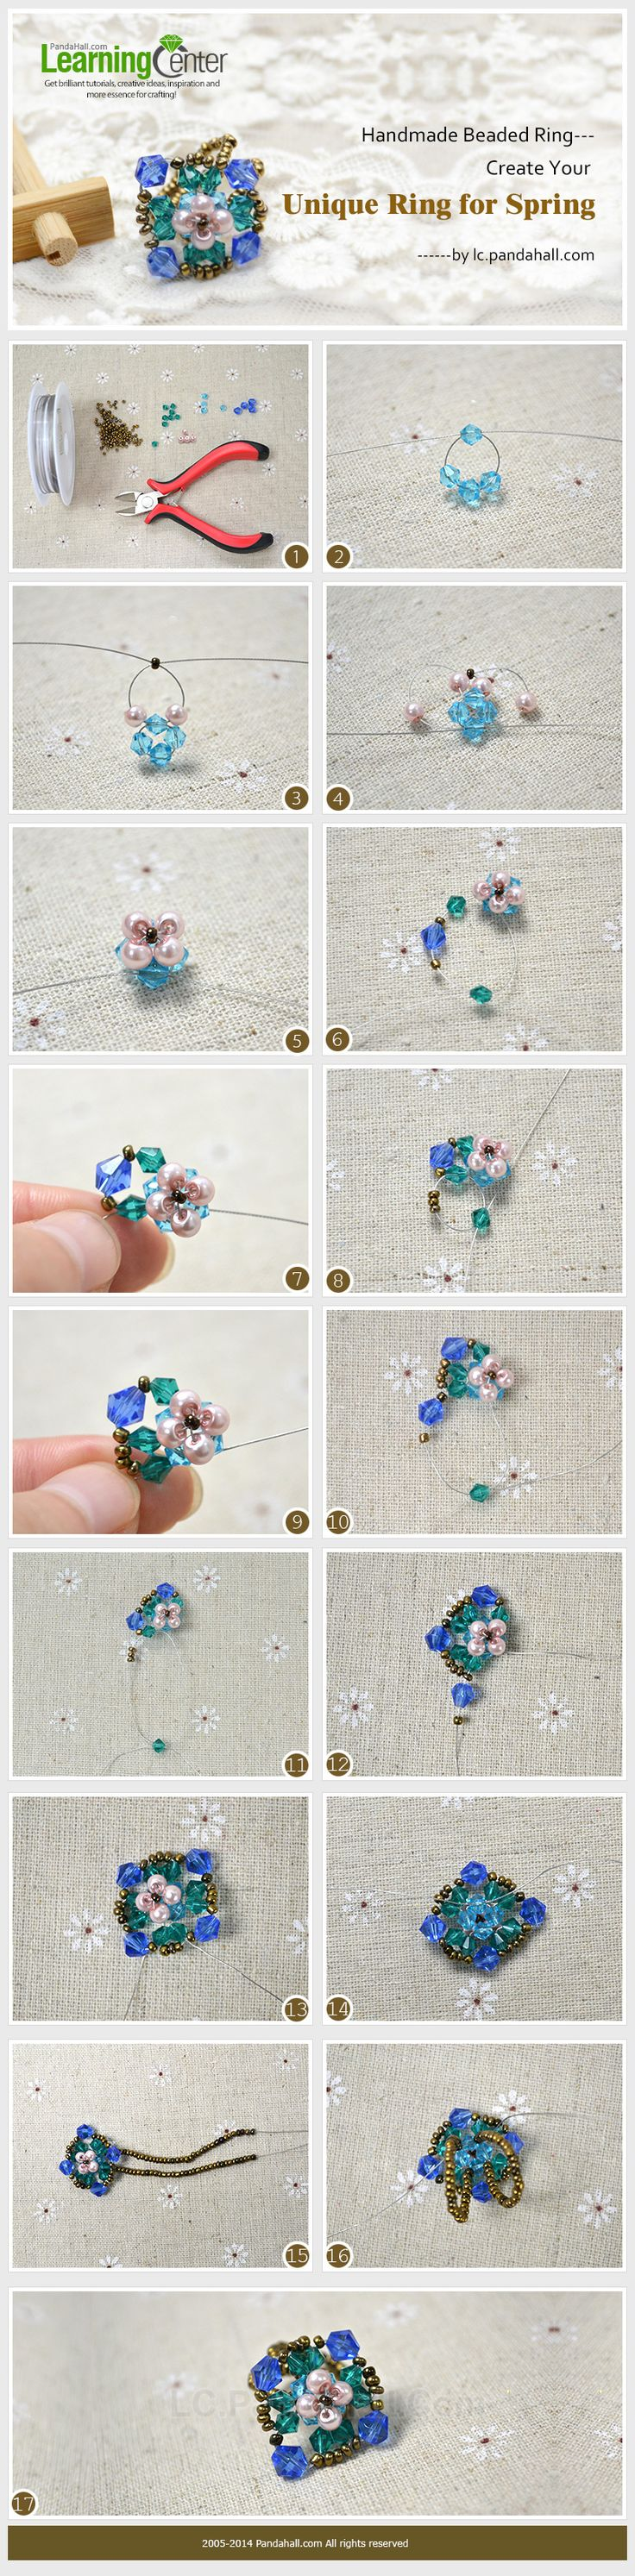 Handmade Beaded Ring---Create Your Unique Ring for Spring